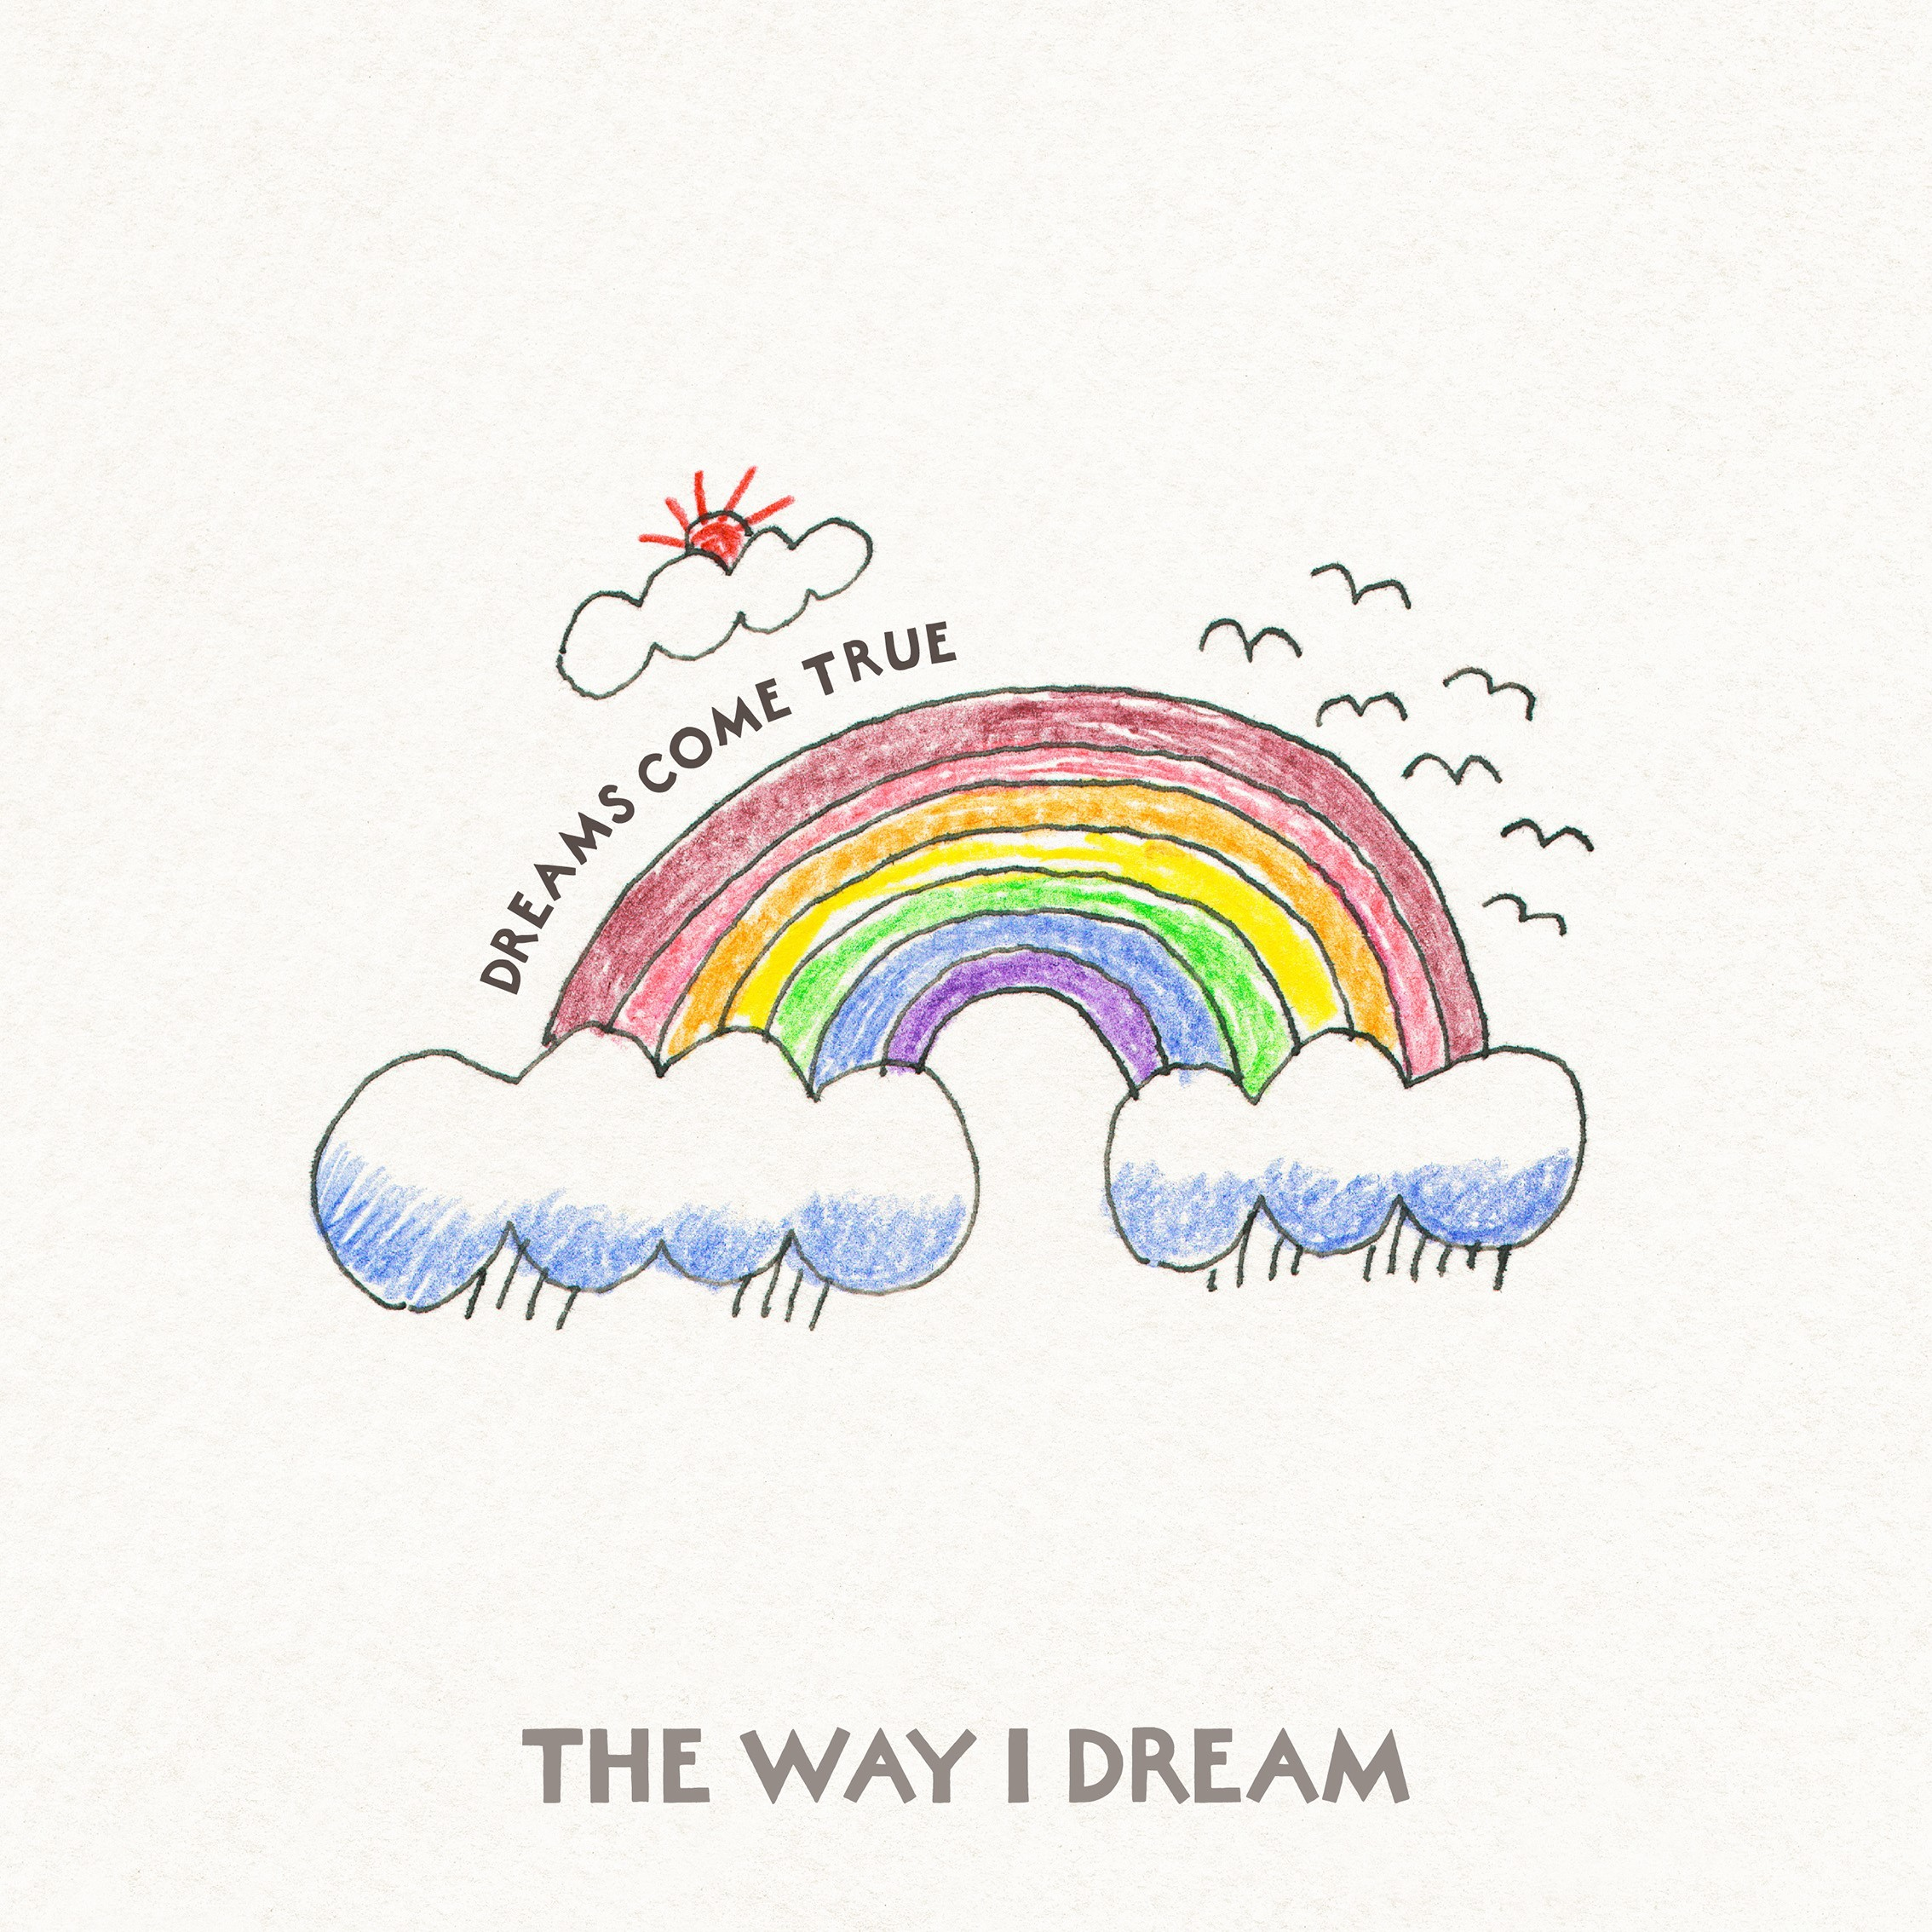 THE WAY I DREAM